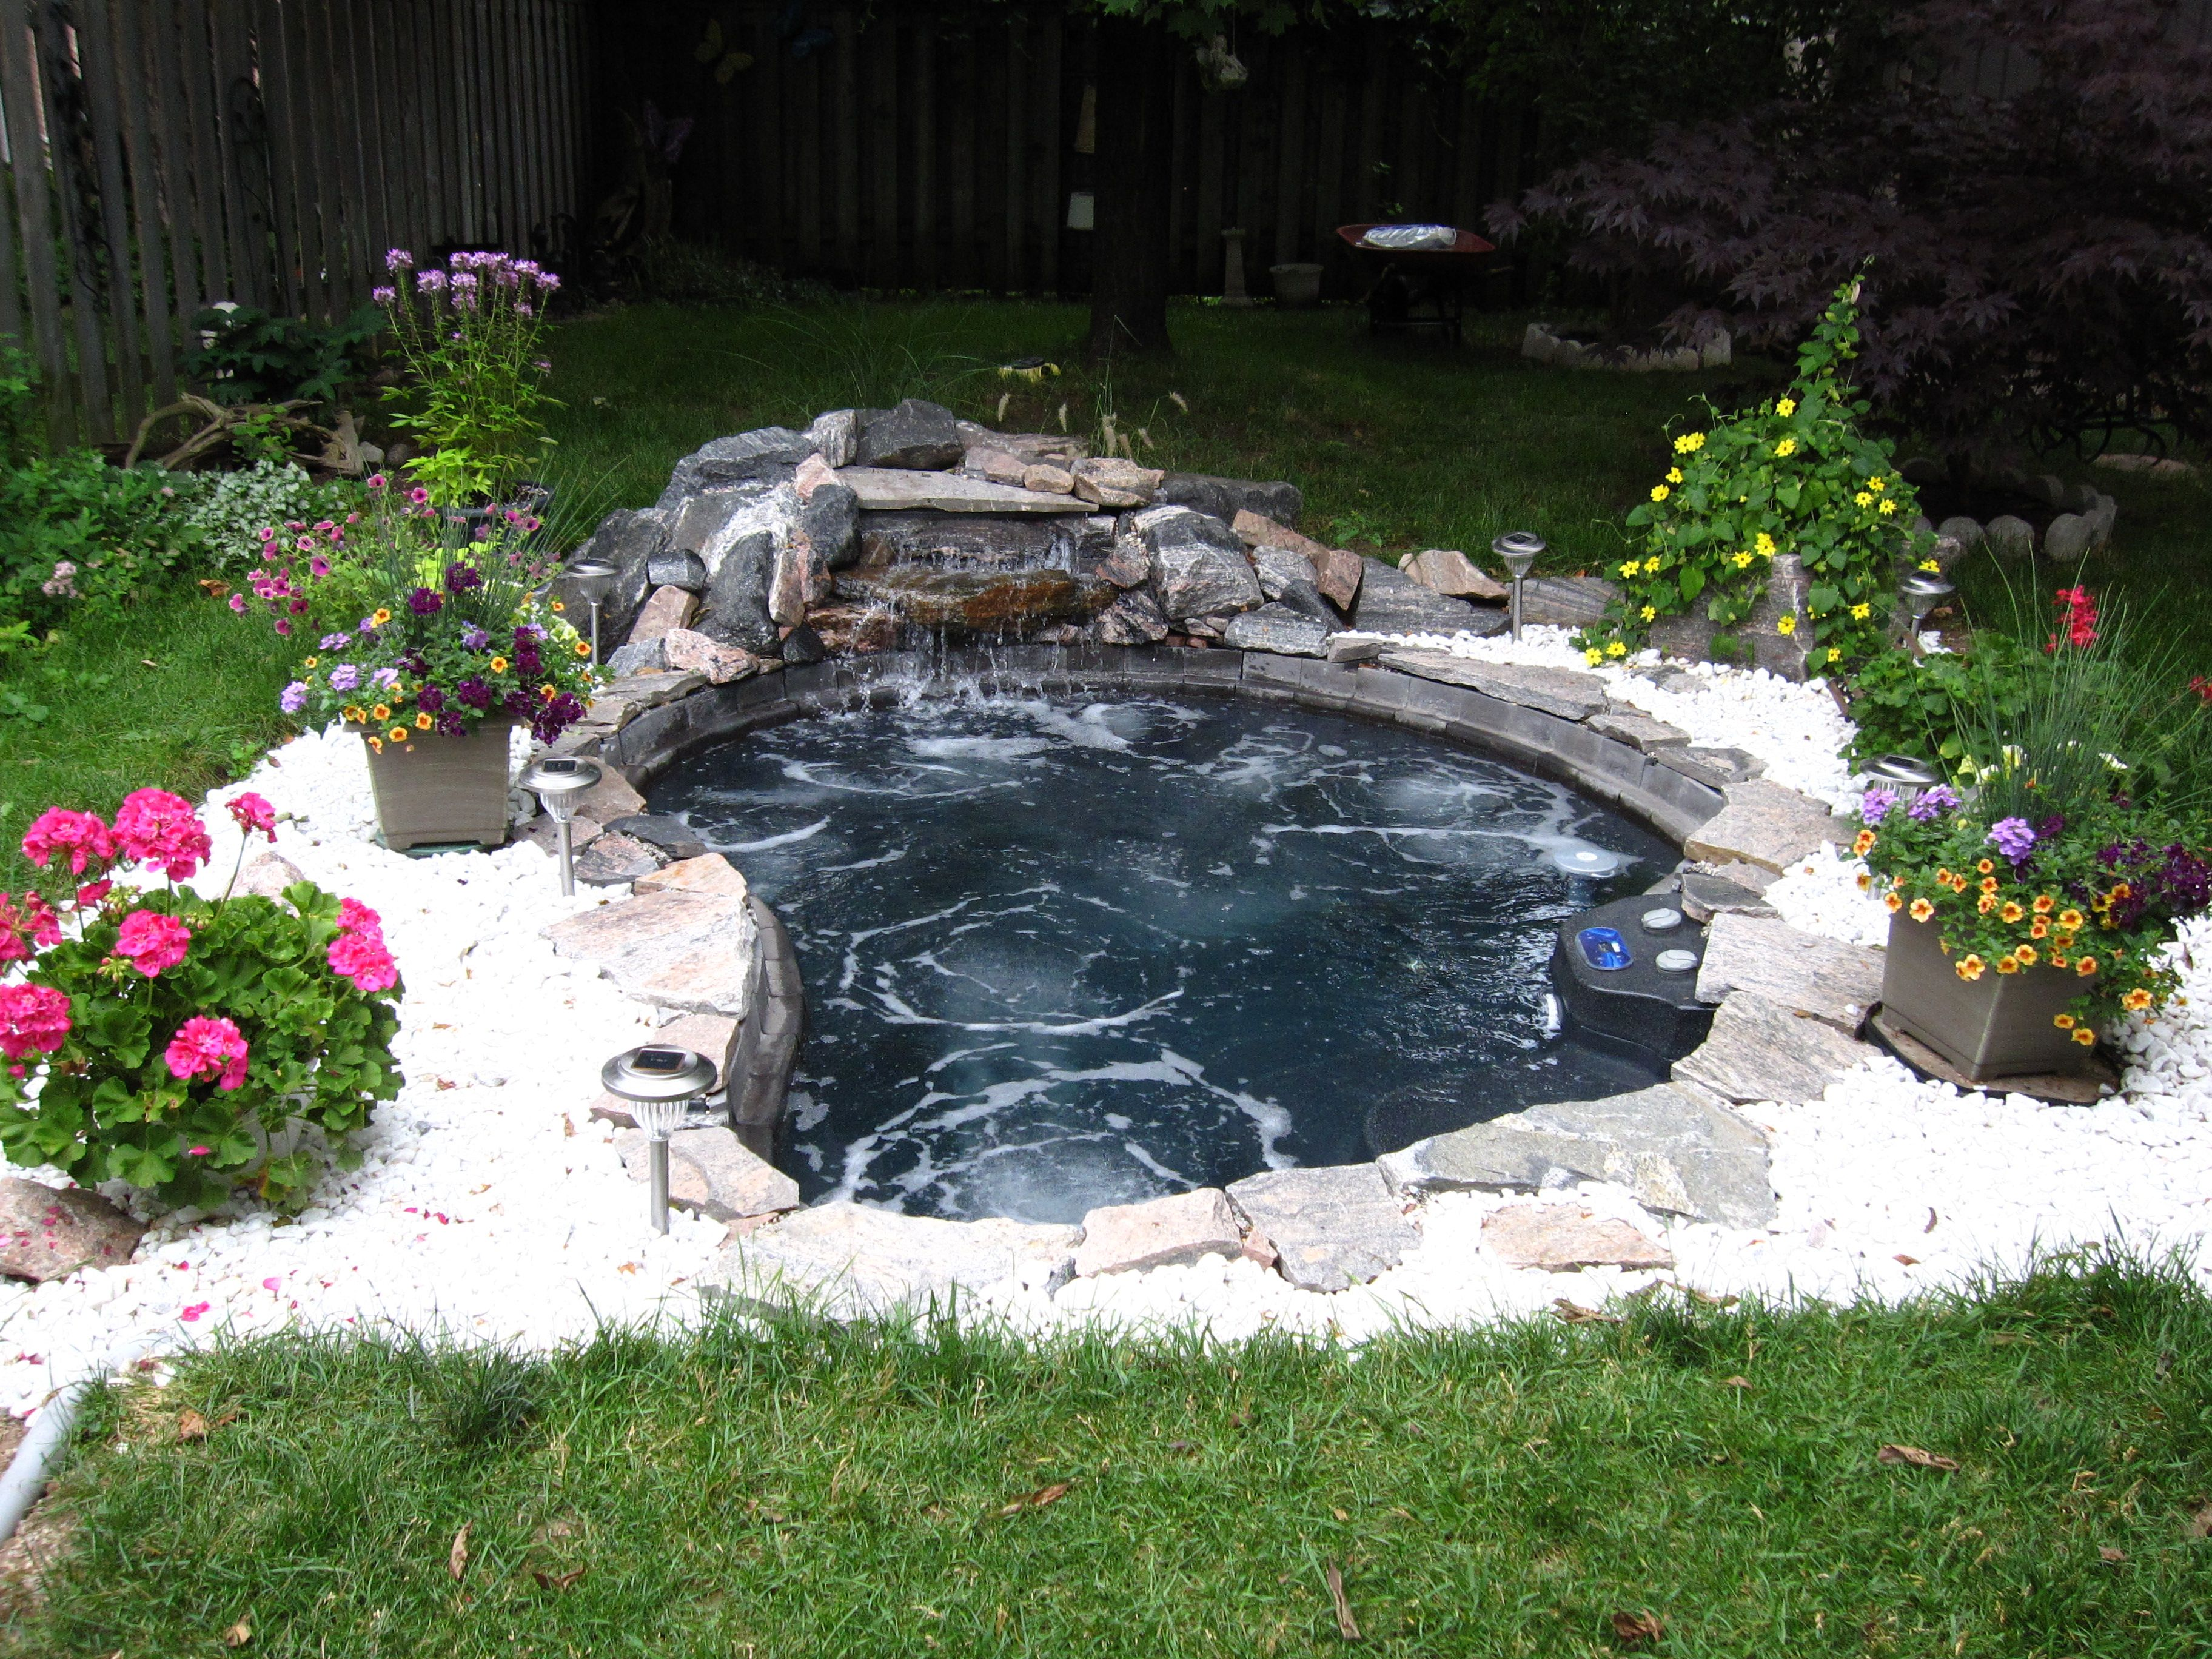 Pin By Eddie Eastwood On Homeprojects Hot Tub Backyard Backyard Spa In Ground Spa